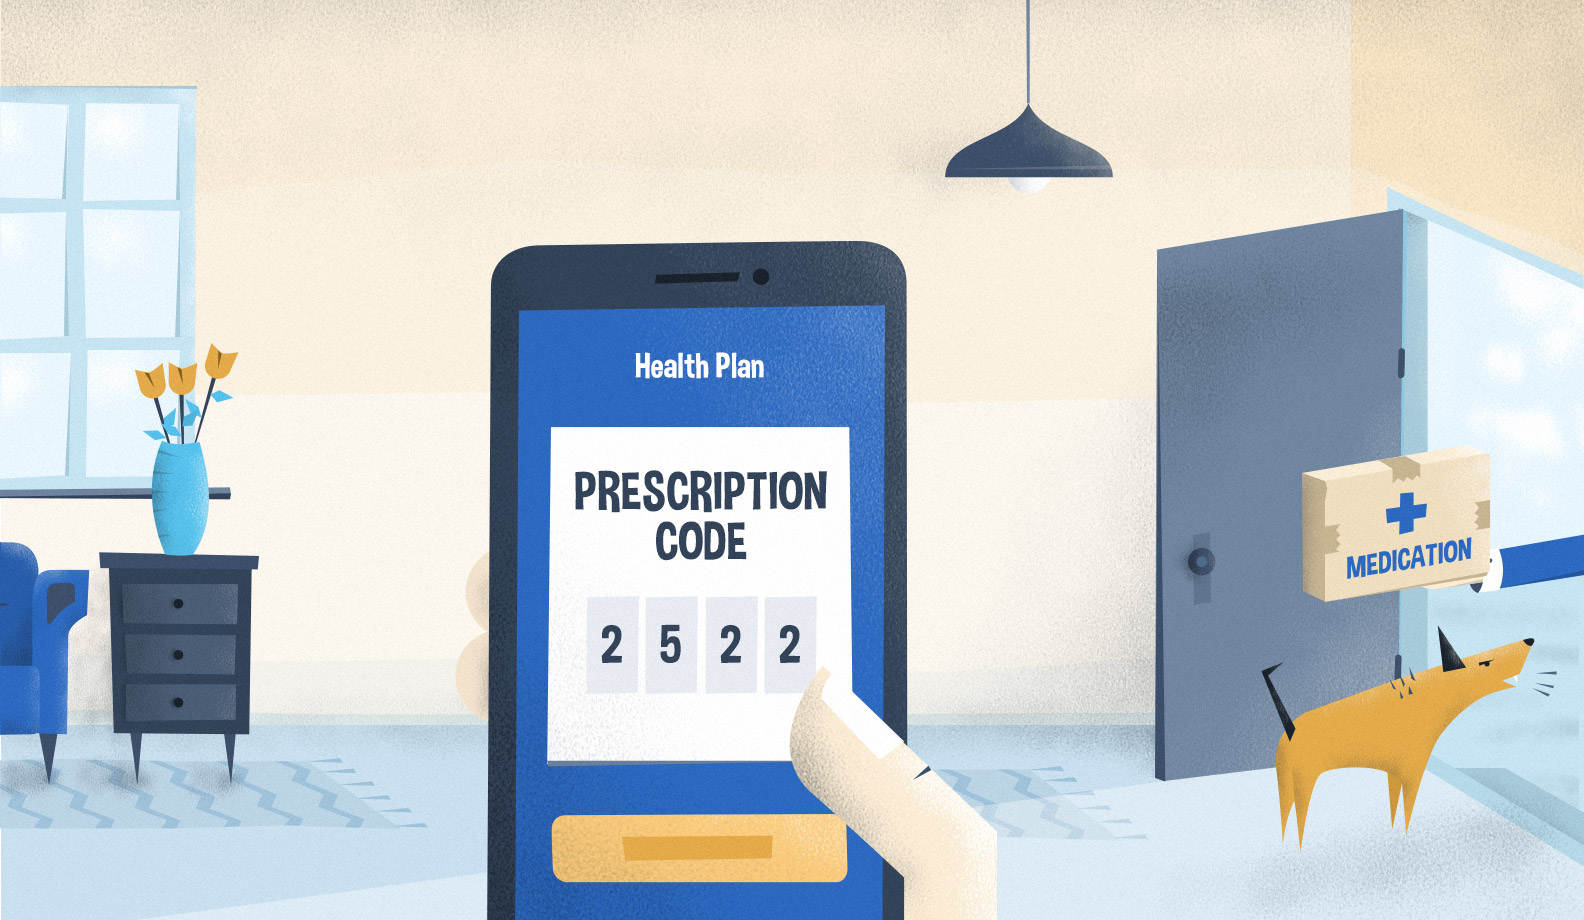 Illustration: mobile phone with exemplary prescription code